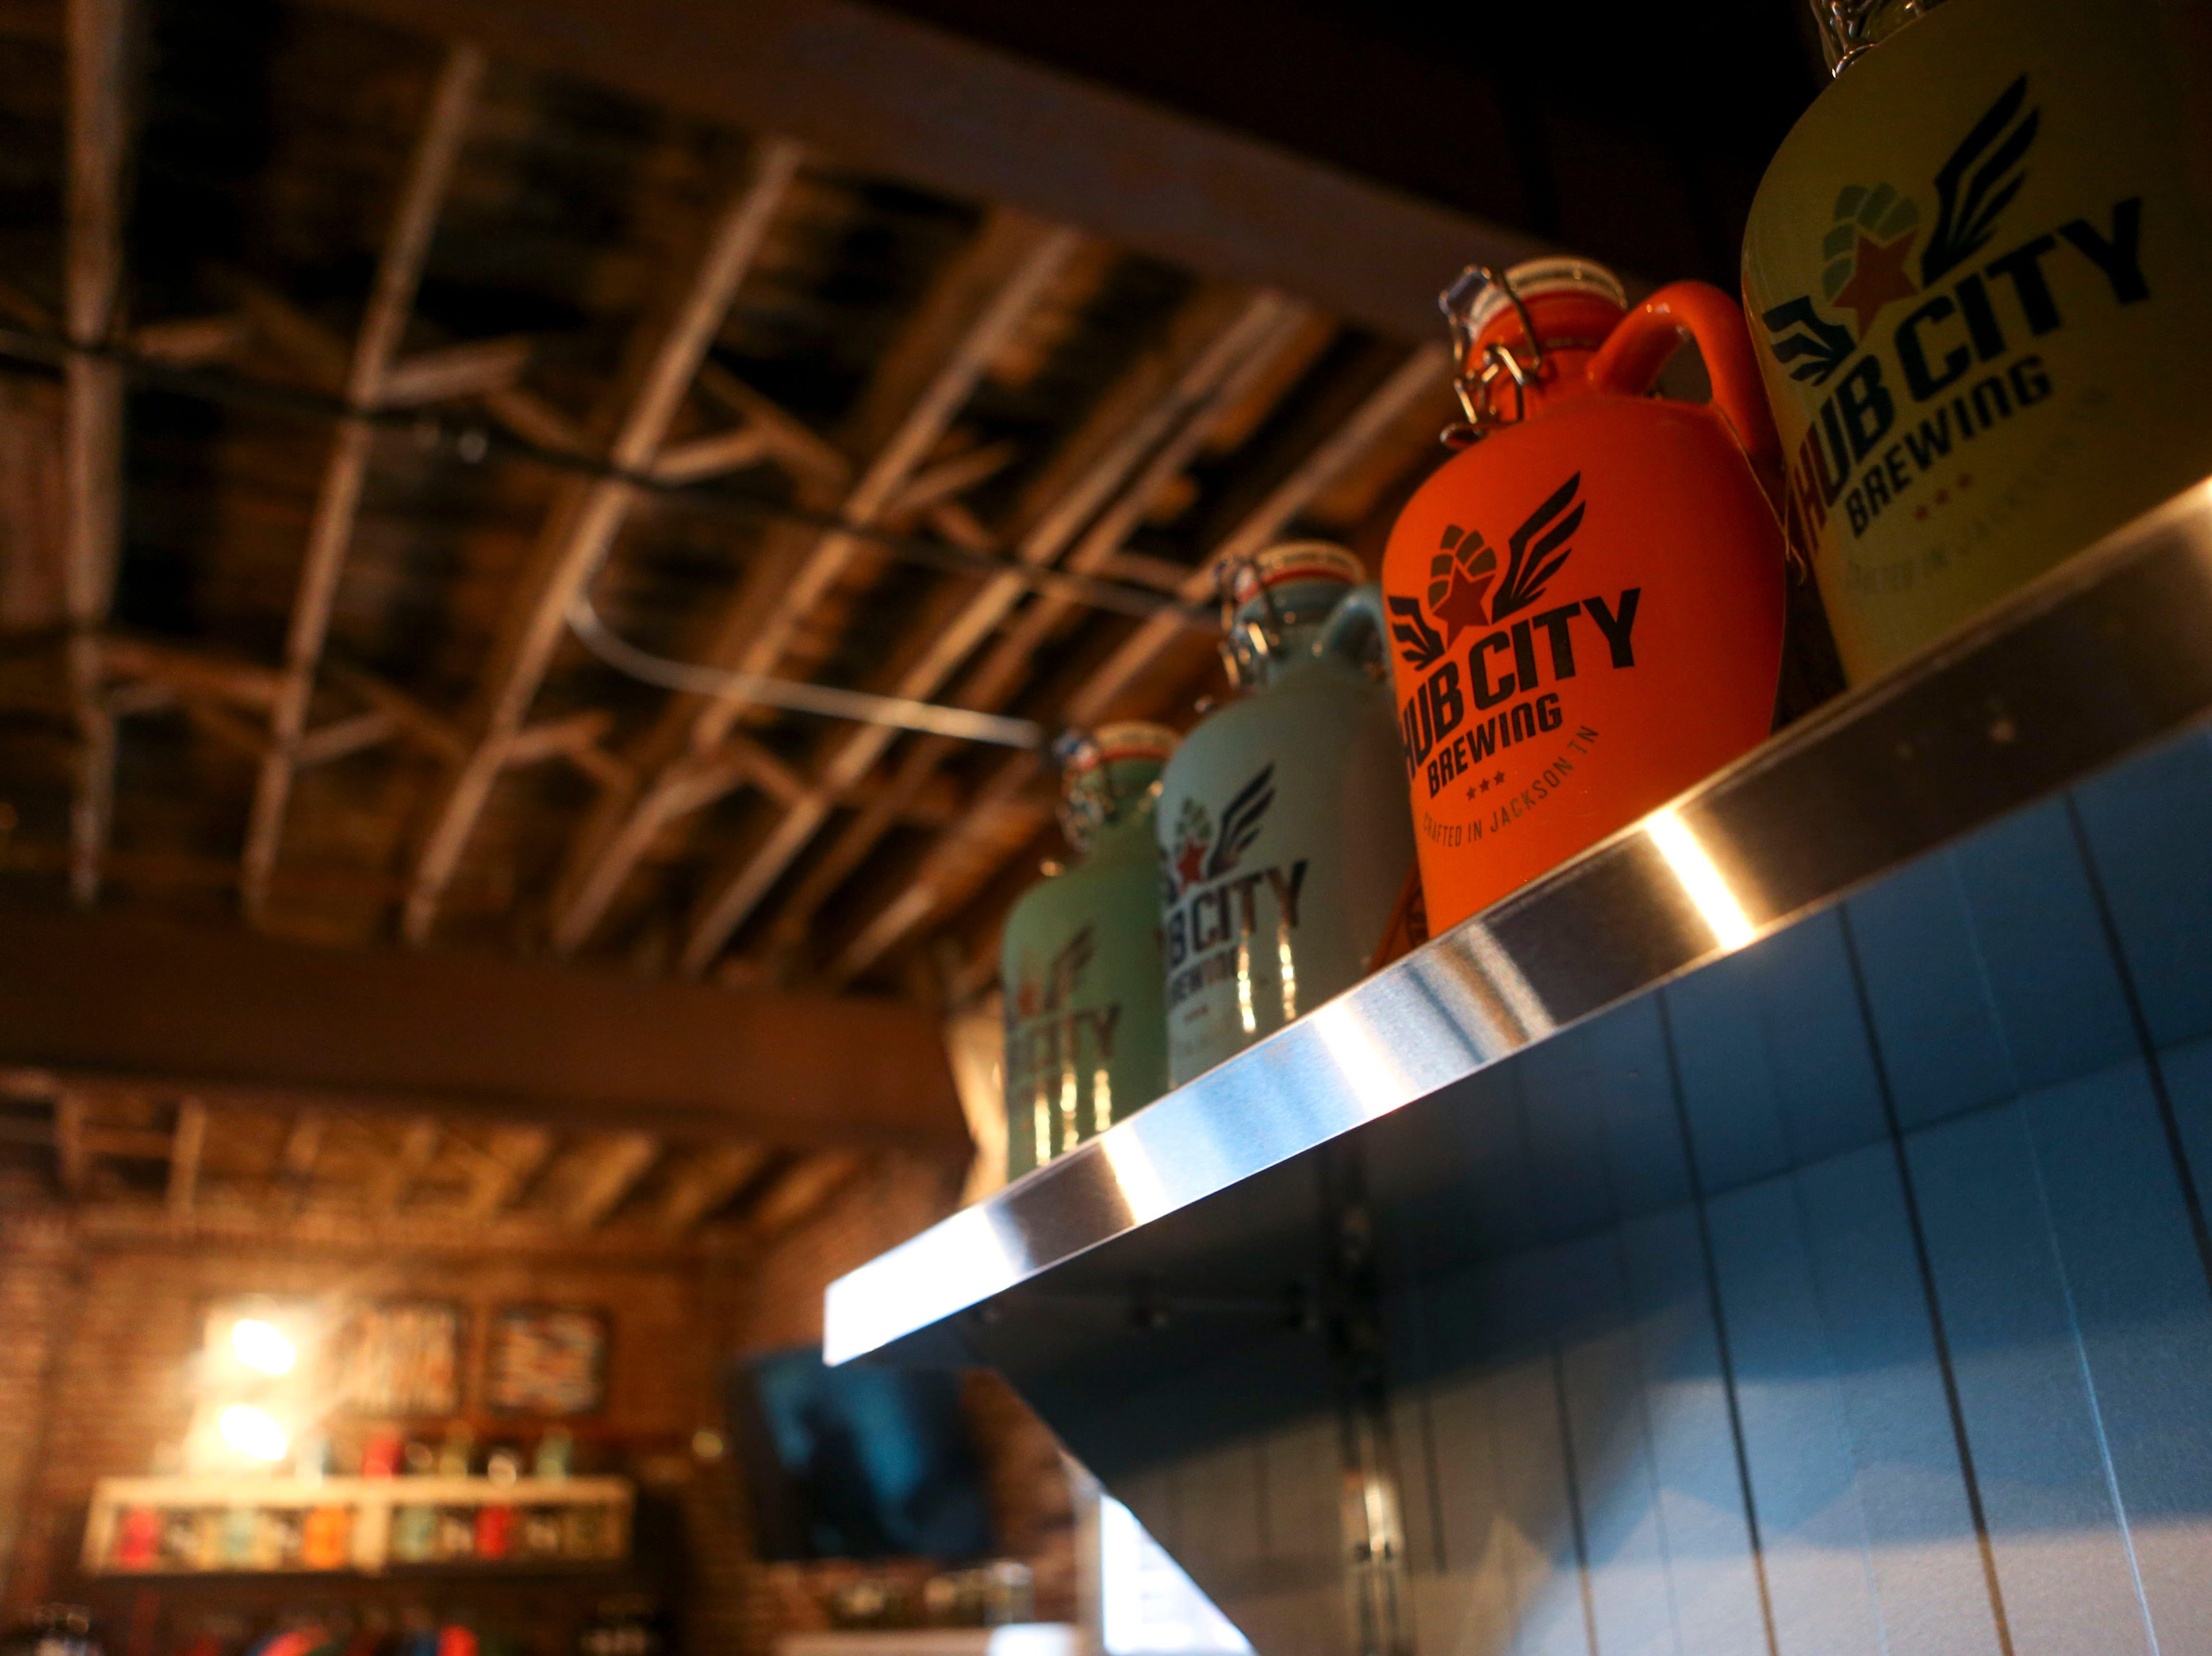 A growler with the brewery's logo can be seen atop a shelf at Hub City Brewing in Jackson, Tenn., on Wednesday, Feb. 6, 2019.